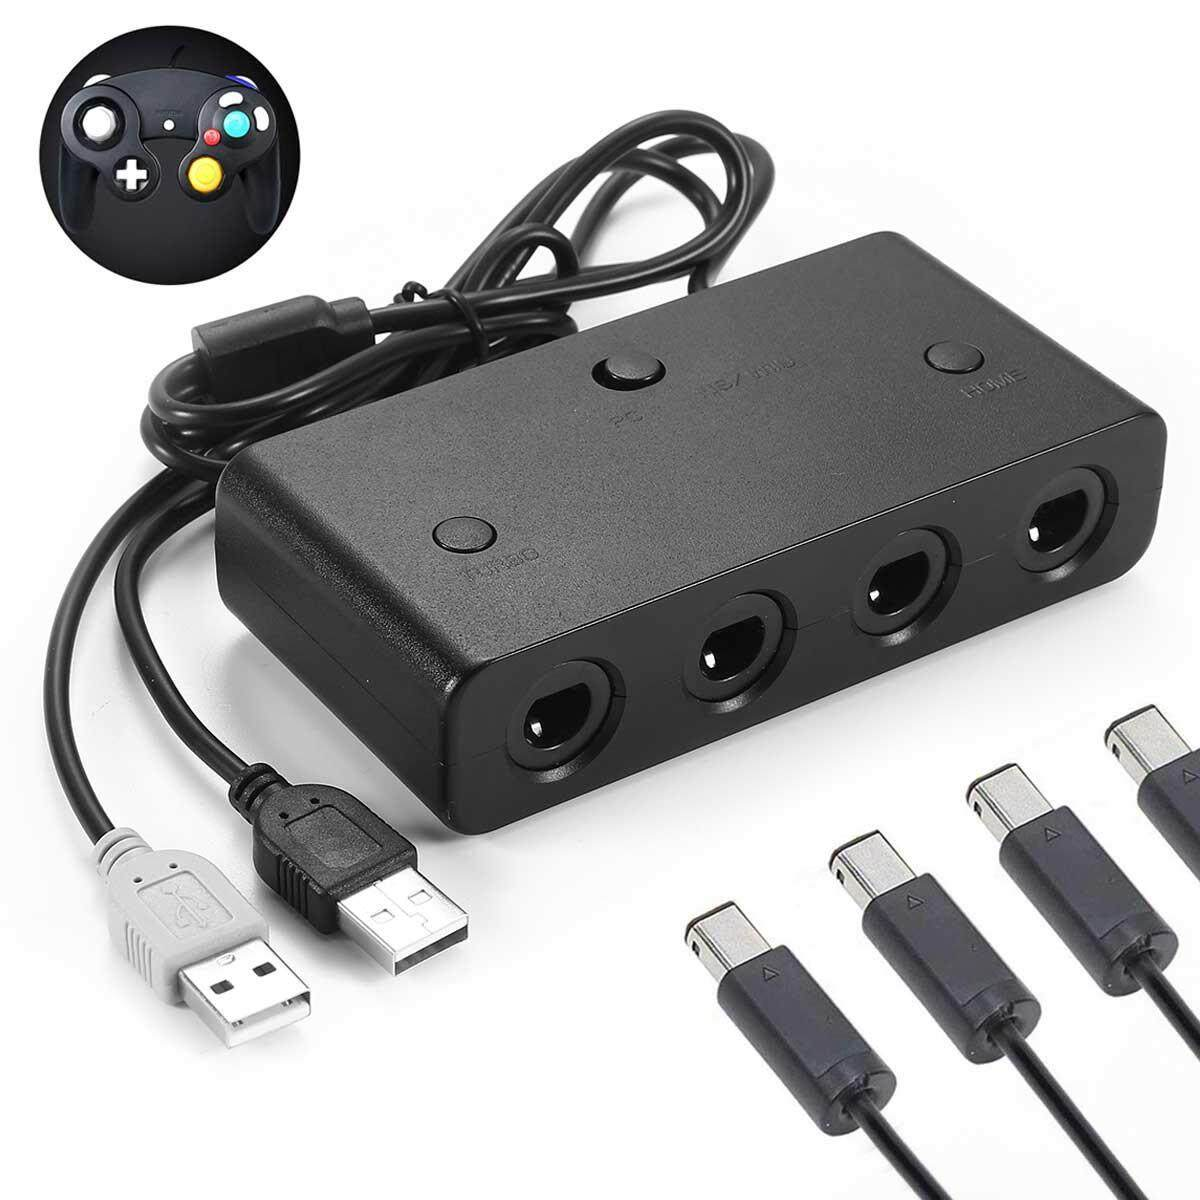 Wincoo 4 Ports GameCube Controller Adapter for Nintend Switch/UWii & PC USB  SH C3S0 U6O2 C8Q1 Supports for GC/Wii Emulator Dolphin